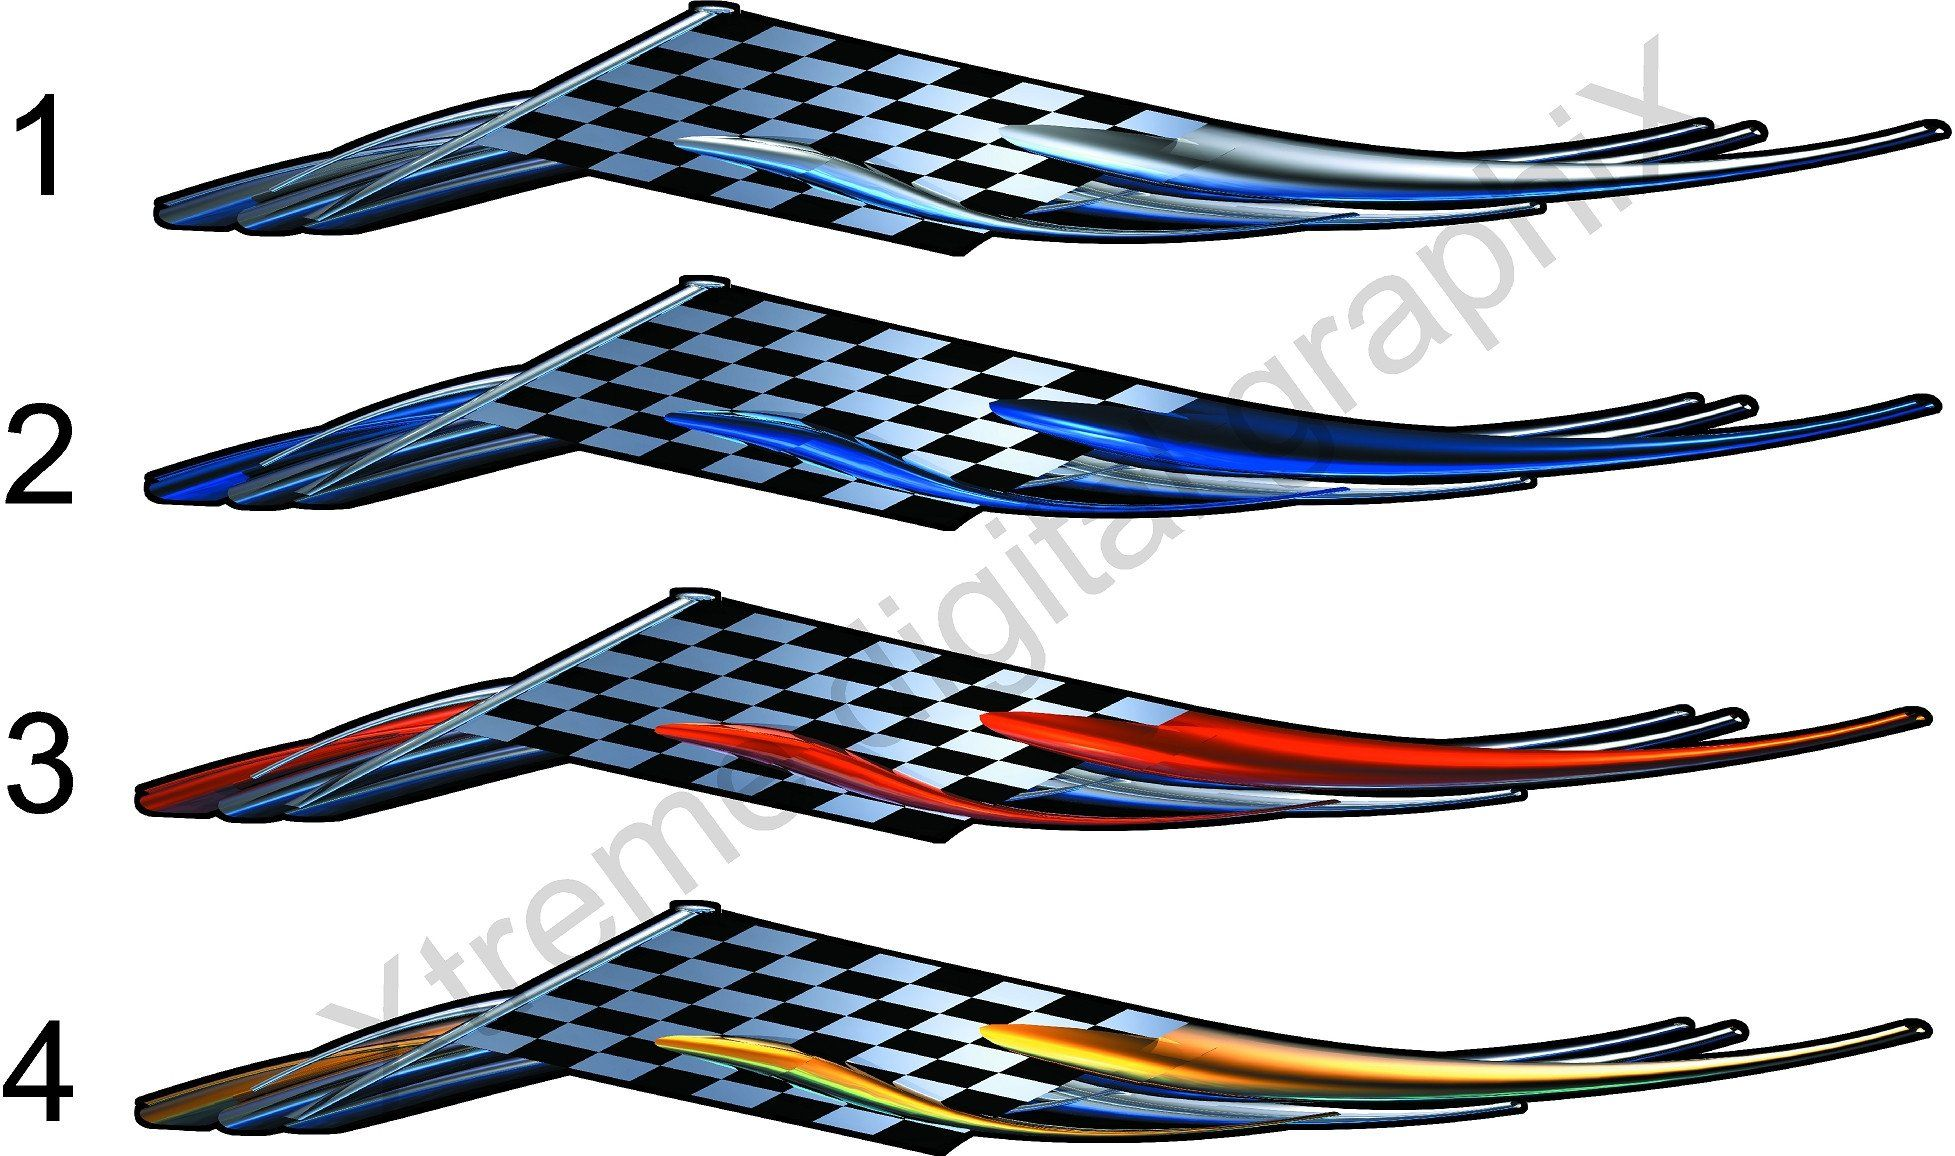 Checkered Flag Racing Wing Vinyl Decals For Cars Trucks Trailers And Boats 2 Car Decals Car Tattoos Vinyl Decals [ 1156 x 1955 Pixel ]